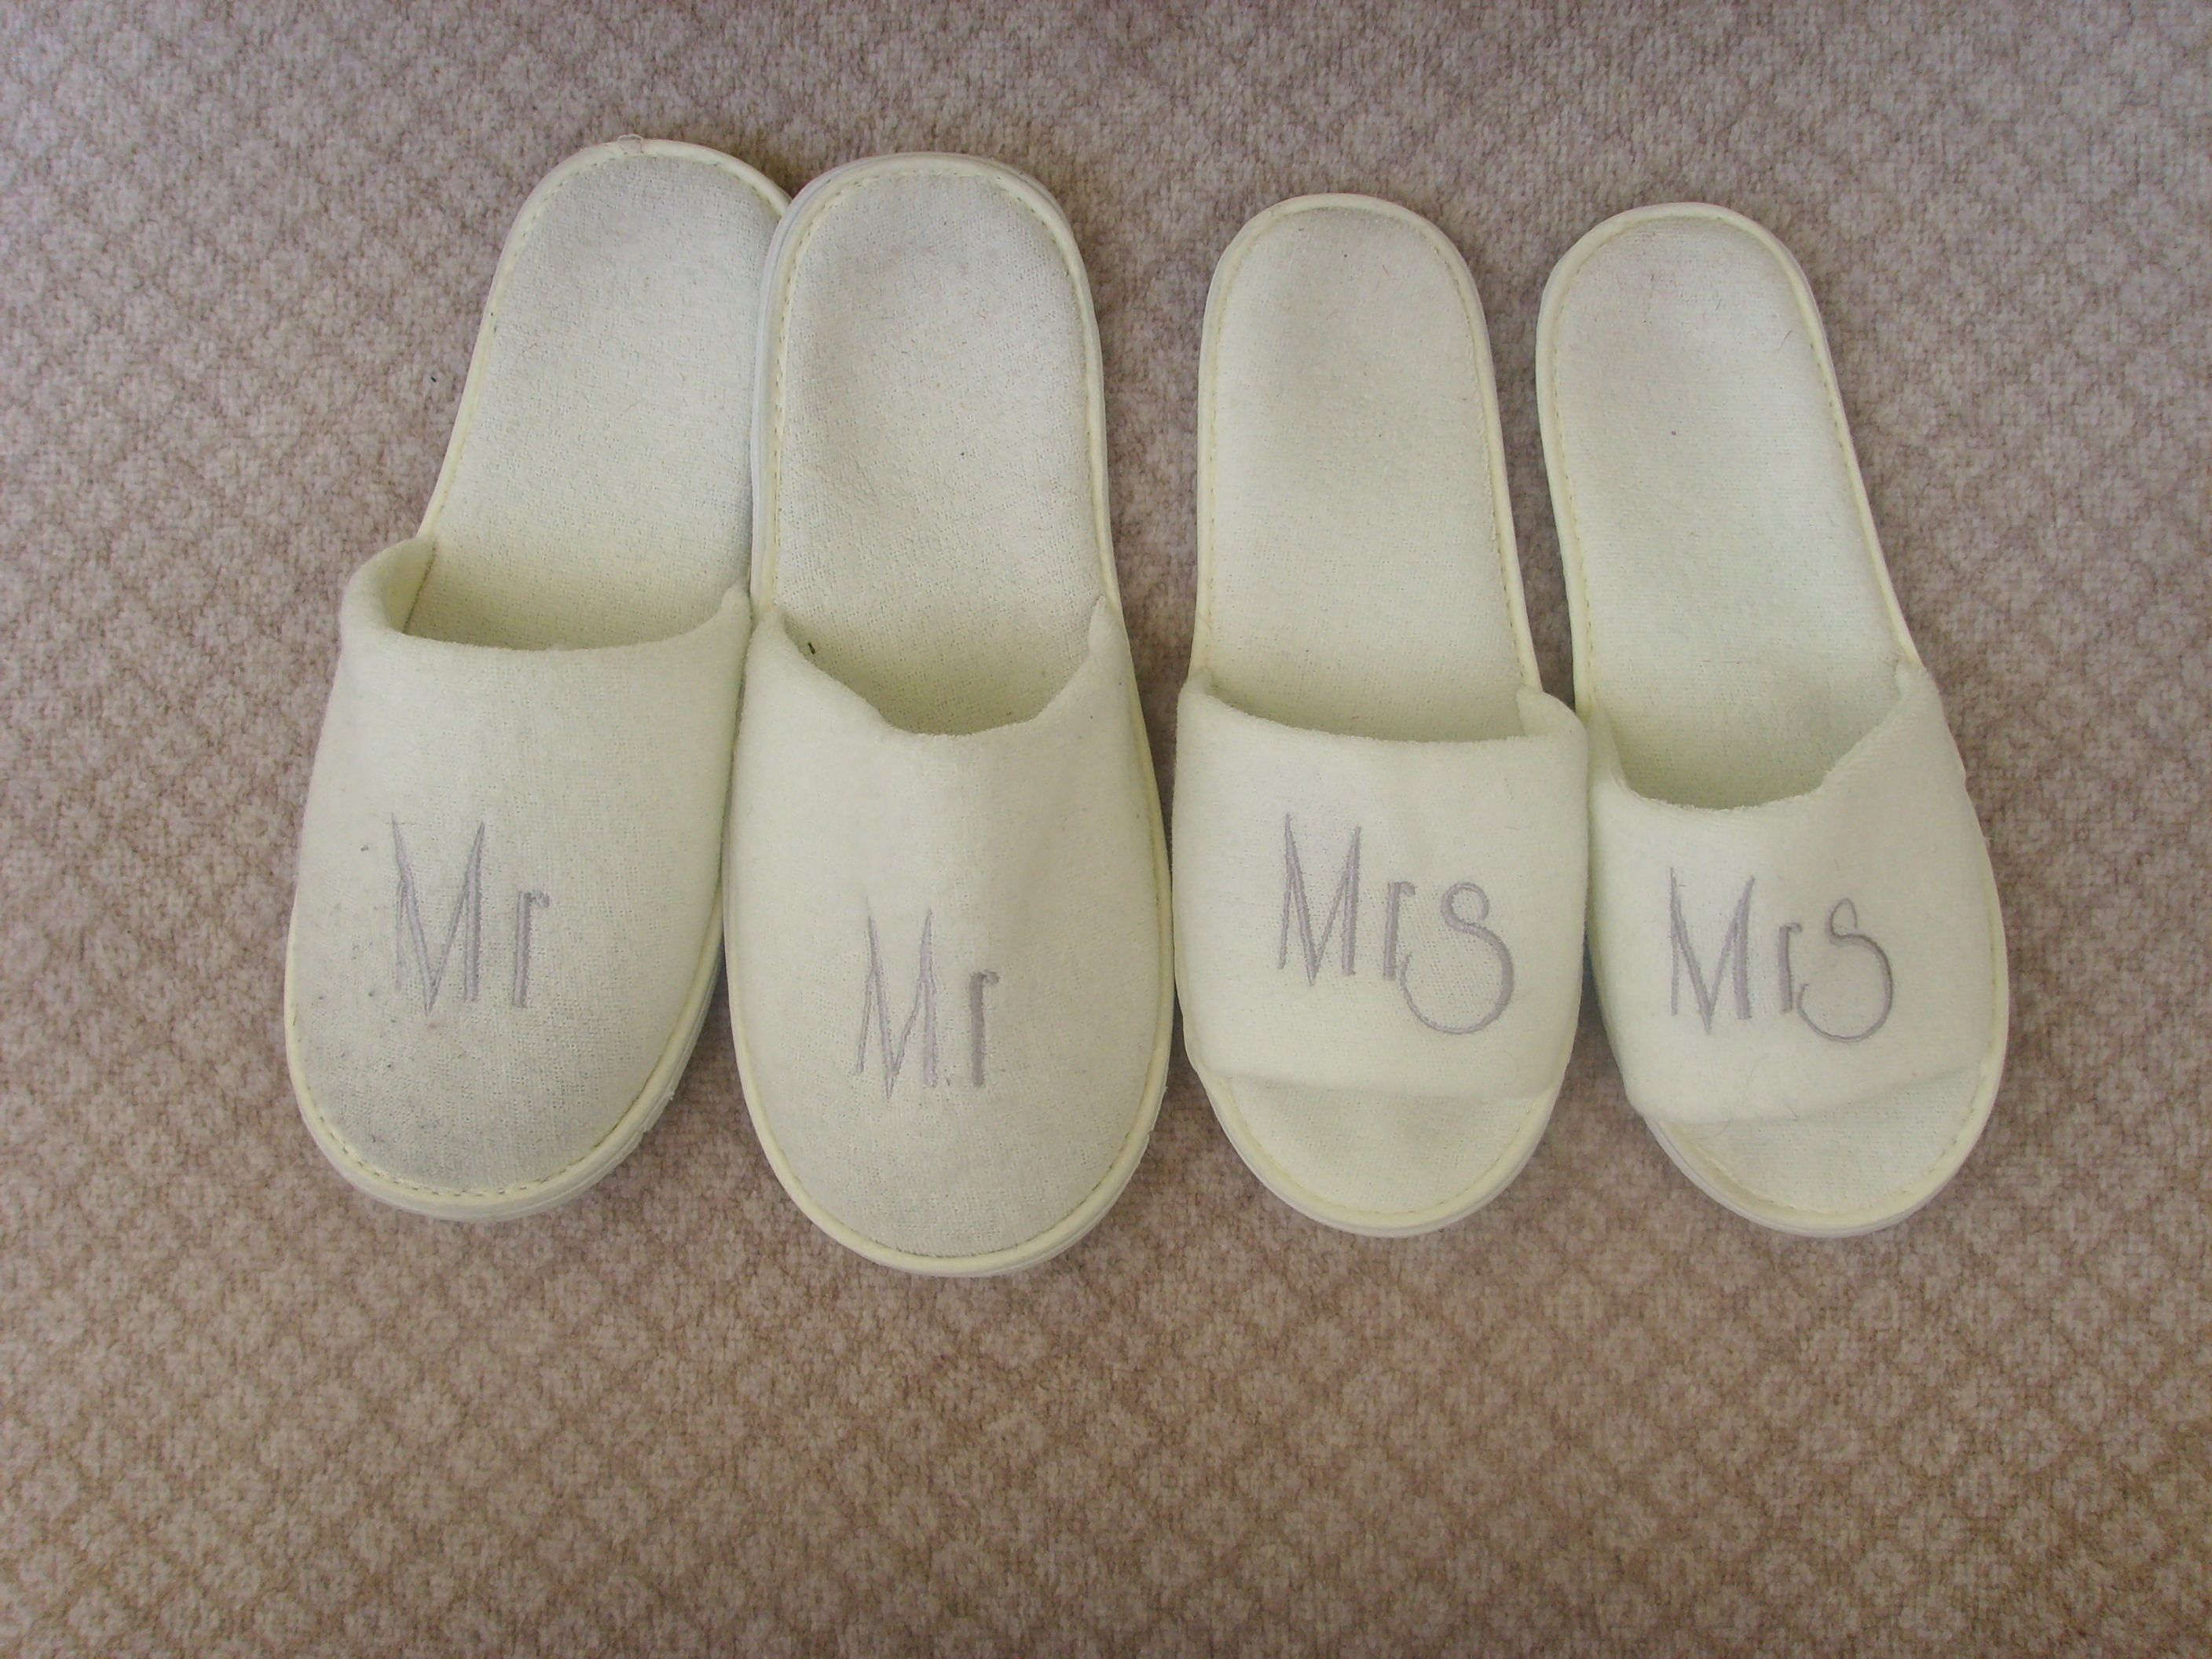 Wedding slippers! A gift from hubby